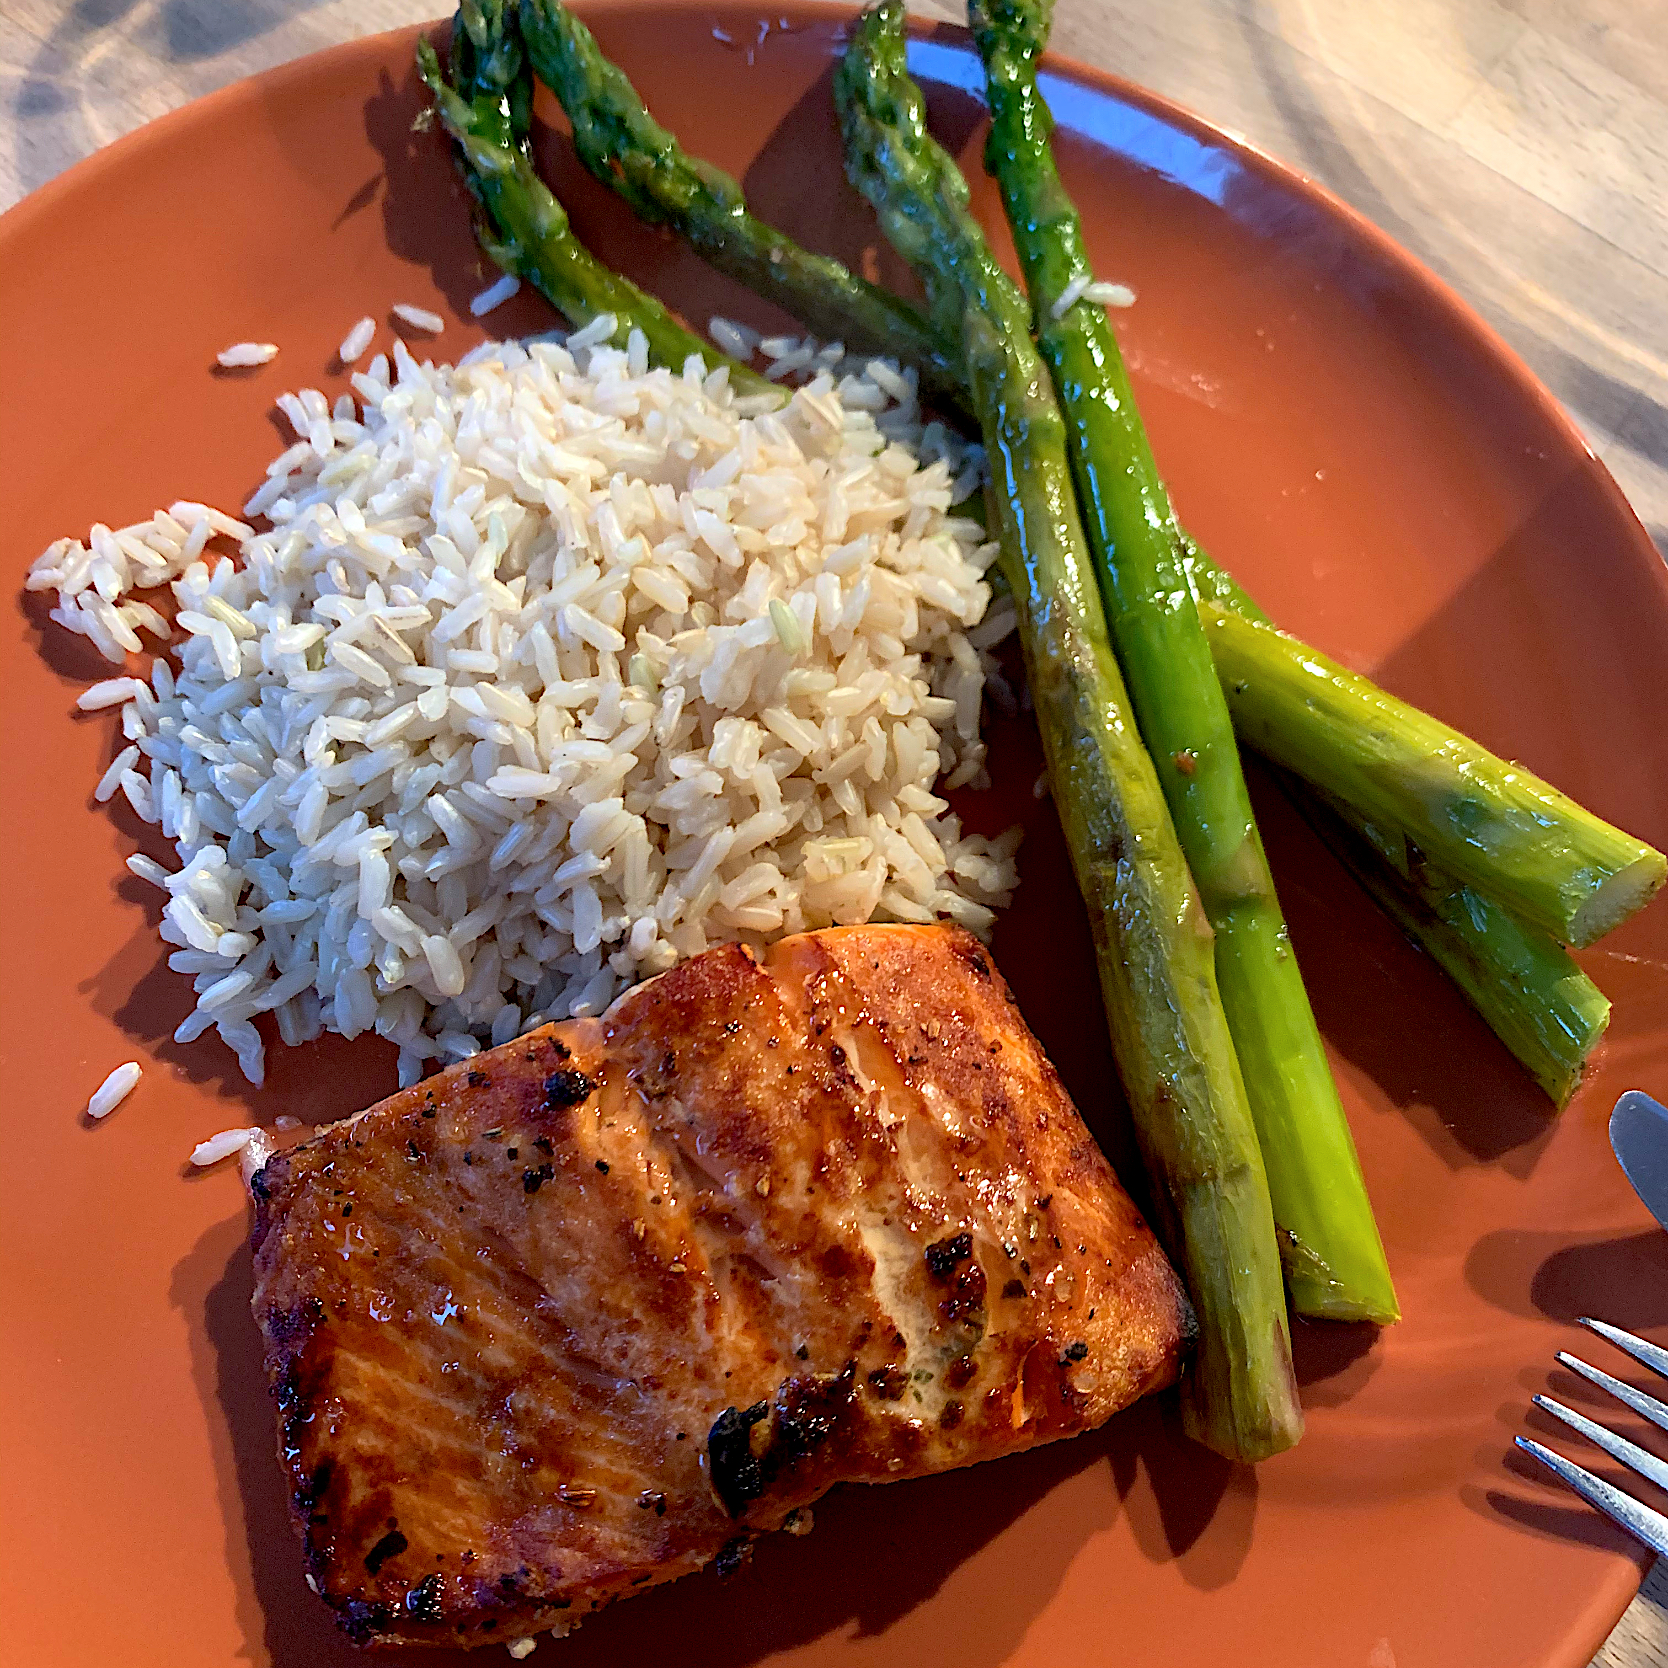 Salmon, asparagus, brown rice